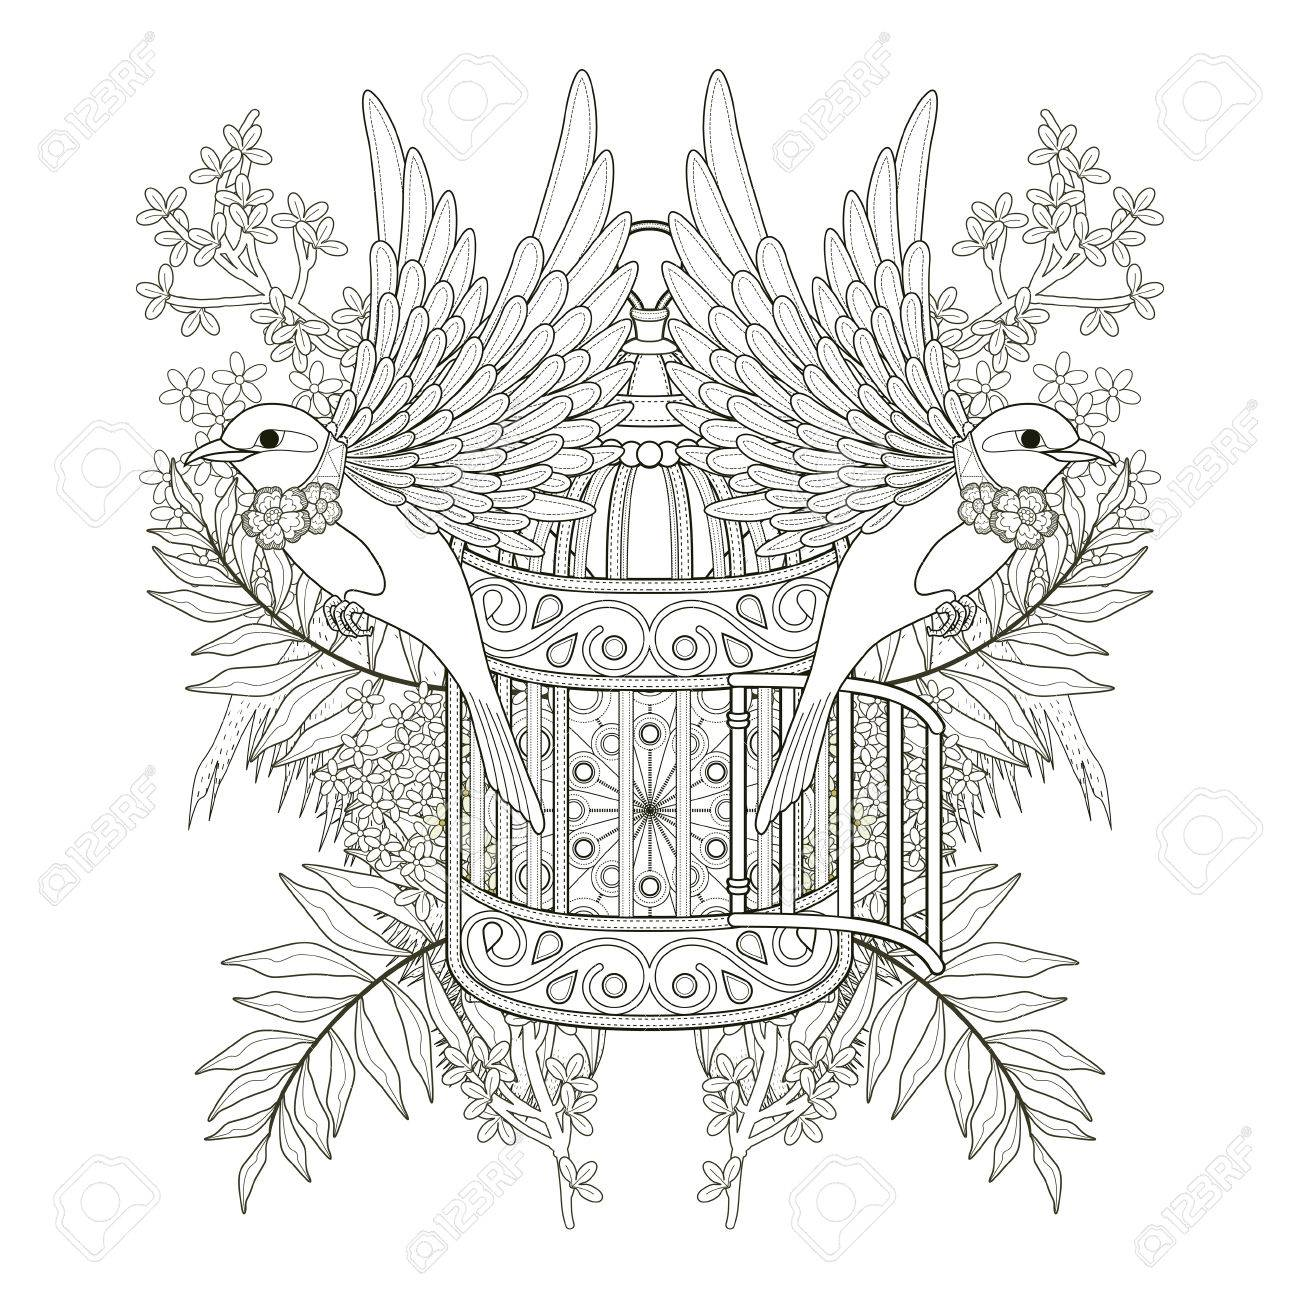 Cheerful Bird Coloring Page Design In Exquisite Style Stock Vector